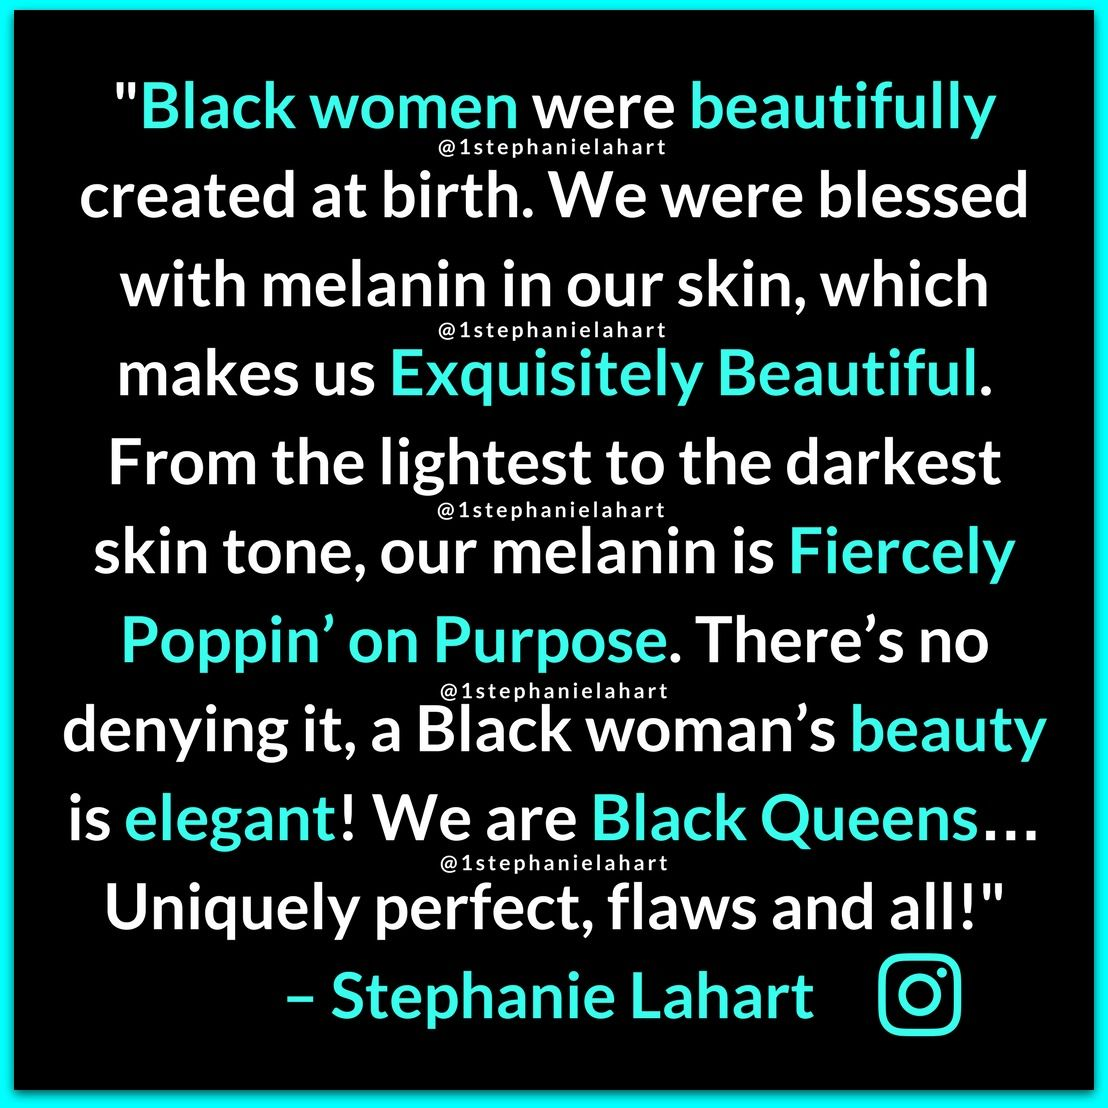 Inspiring Black Woman Beauty Quotes Black Queen A Quote That Celebrates The Black Woman S Exquisite Beauty Black Beauty Women Beauty Quotes Beauty Women